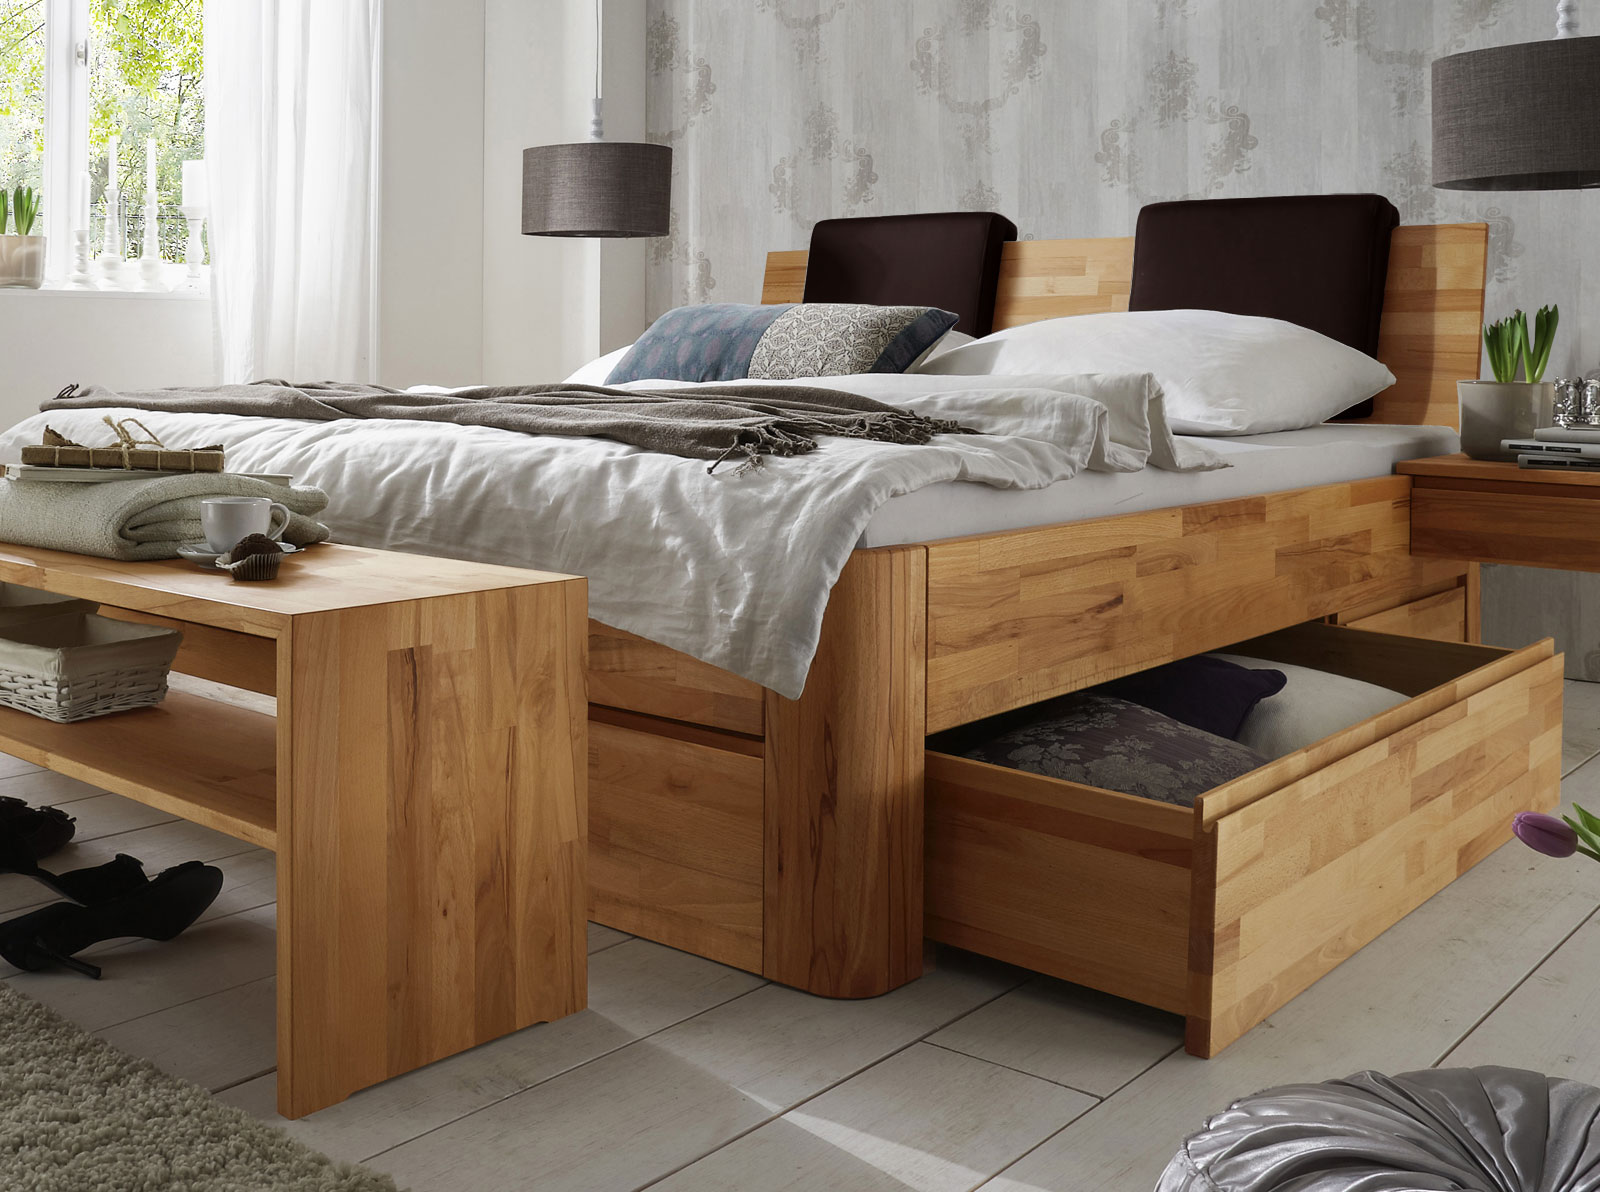 Massivholz doppelbett mit bettkasten zarbo for Modern massiv bauen